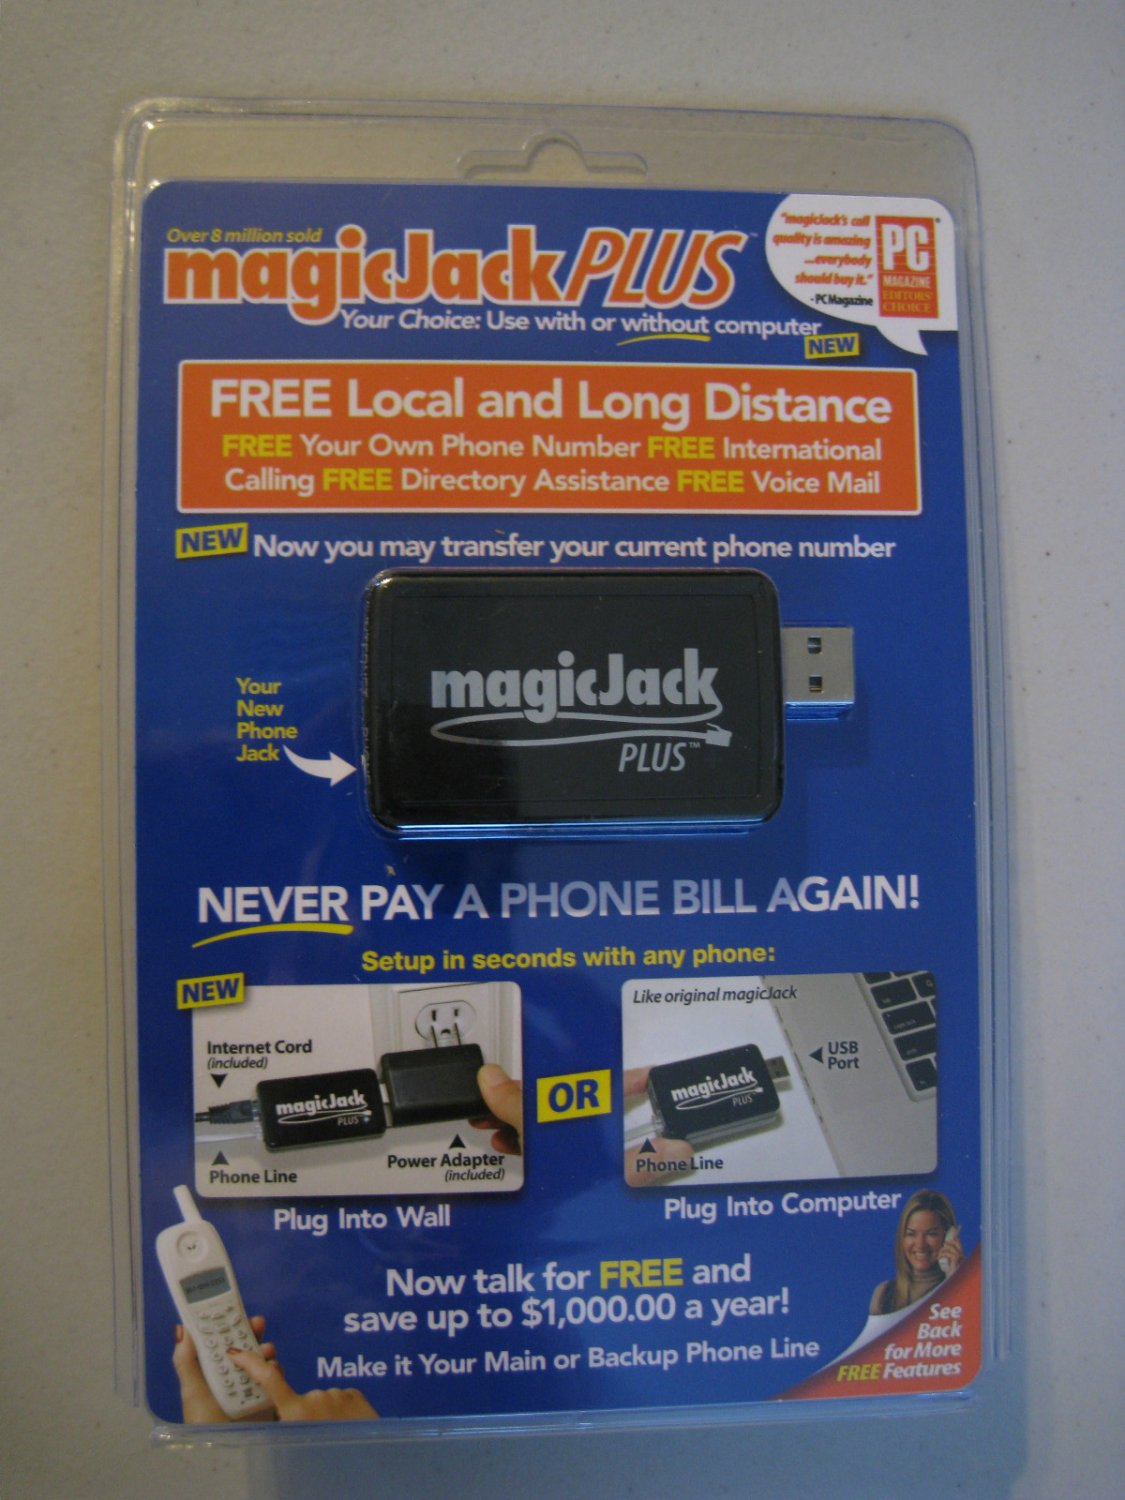 Magicjack Plus,brand New Sealed With One Year Free Service. Donate Eggs For Stem Cell Research. Nutrition Programs College Social Work School. Cable With No Credit Check Plumbers Cape Cod. City Row Apartments Madison Wi. Illinois Eye Center Peoria Il. Inventory Management App Spanish News Channel. Colorado Workers Compensation Law. How To Set Up Bank Account Online